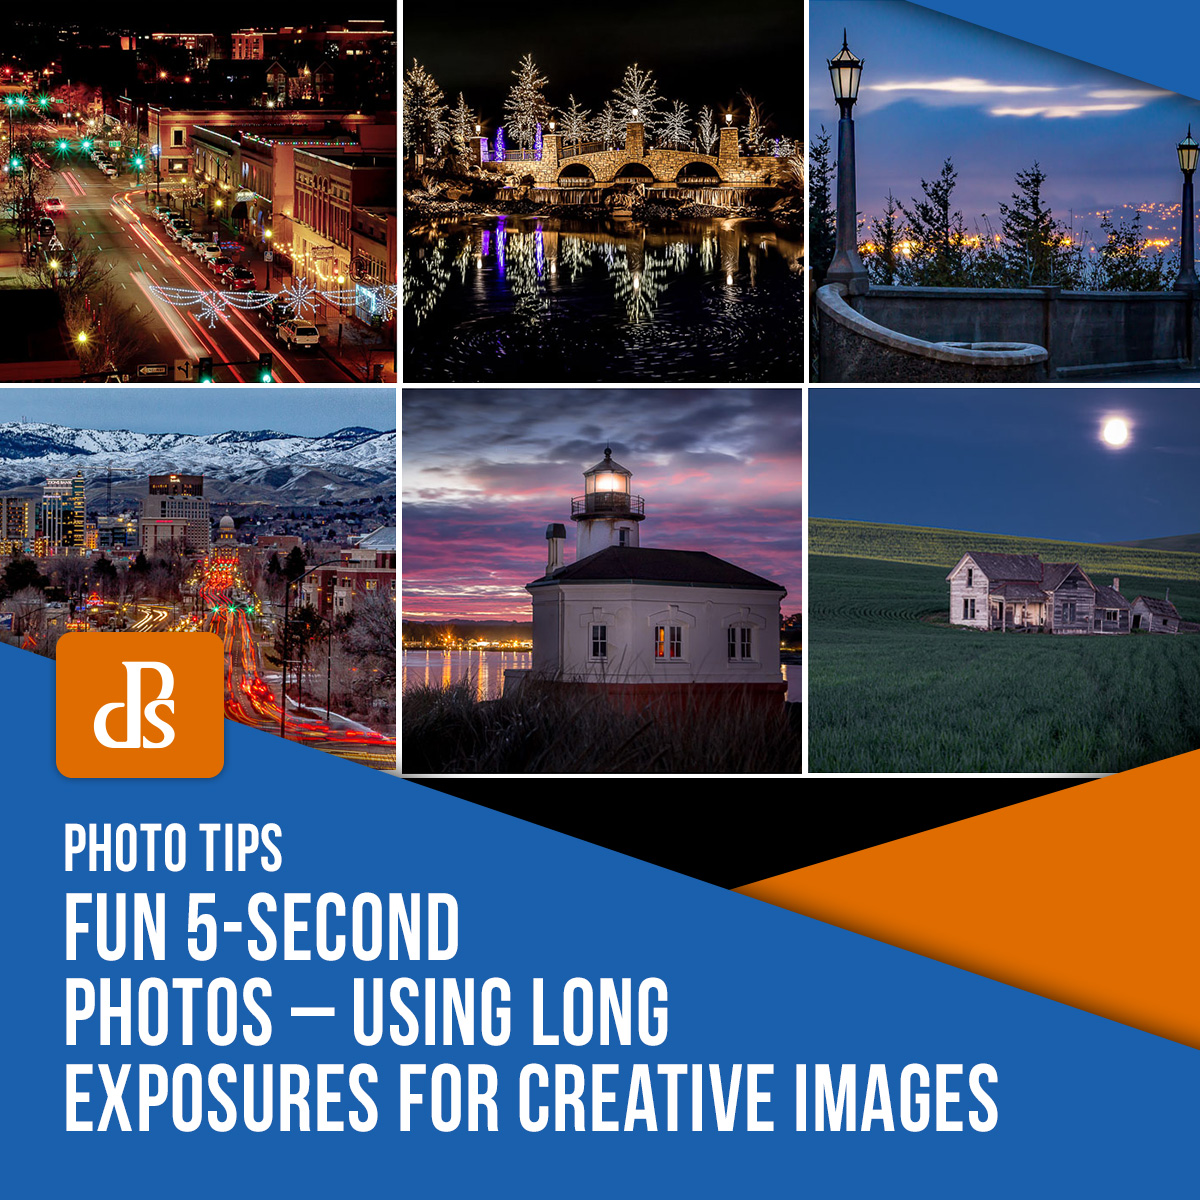 long exposures for creative images